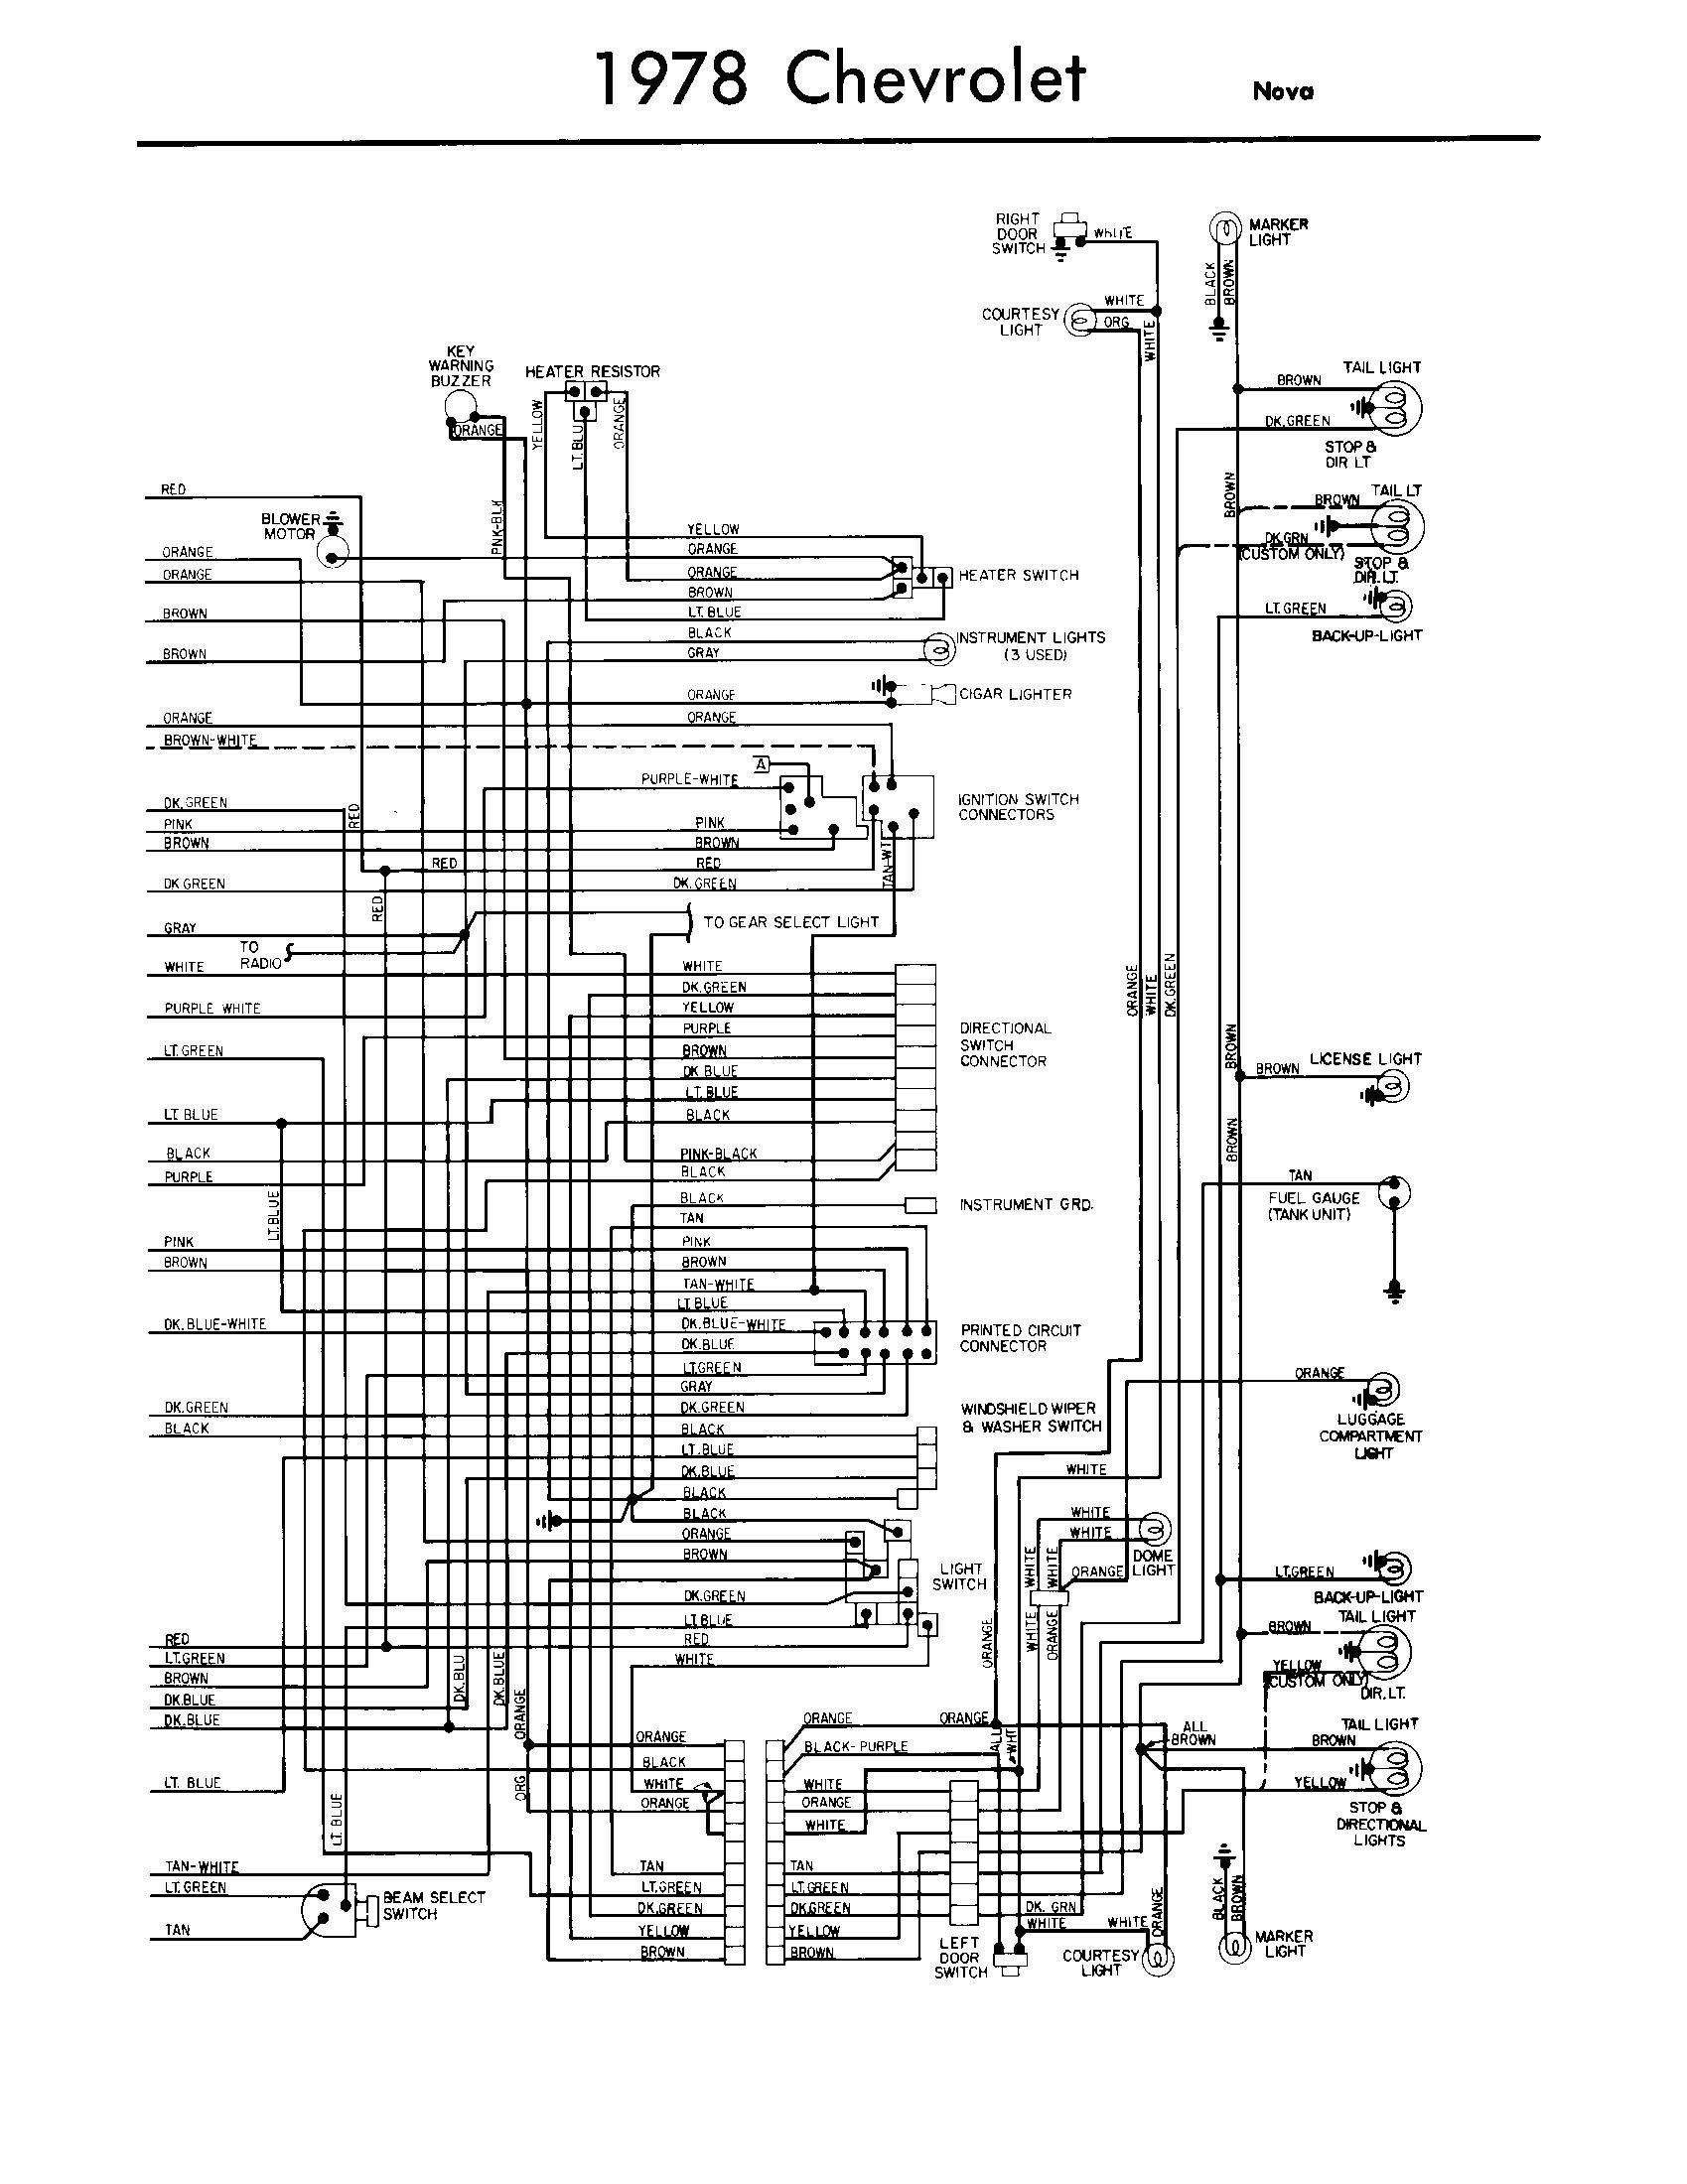 1979 Chevy Truck Radio Wiring Diagram 73 87 Chevy Truck Wiring Diagram Of 1979 Chevy Truck Radio Wiring Diagram